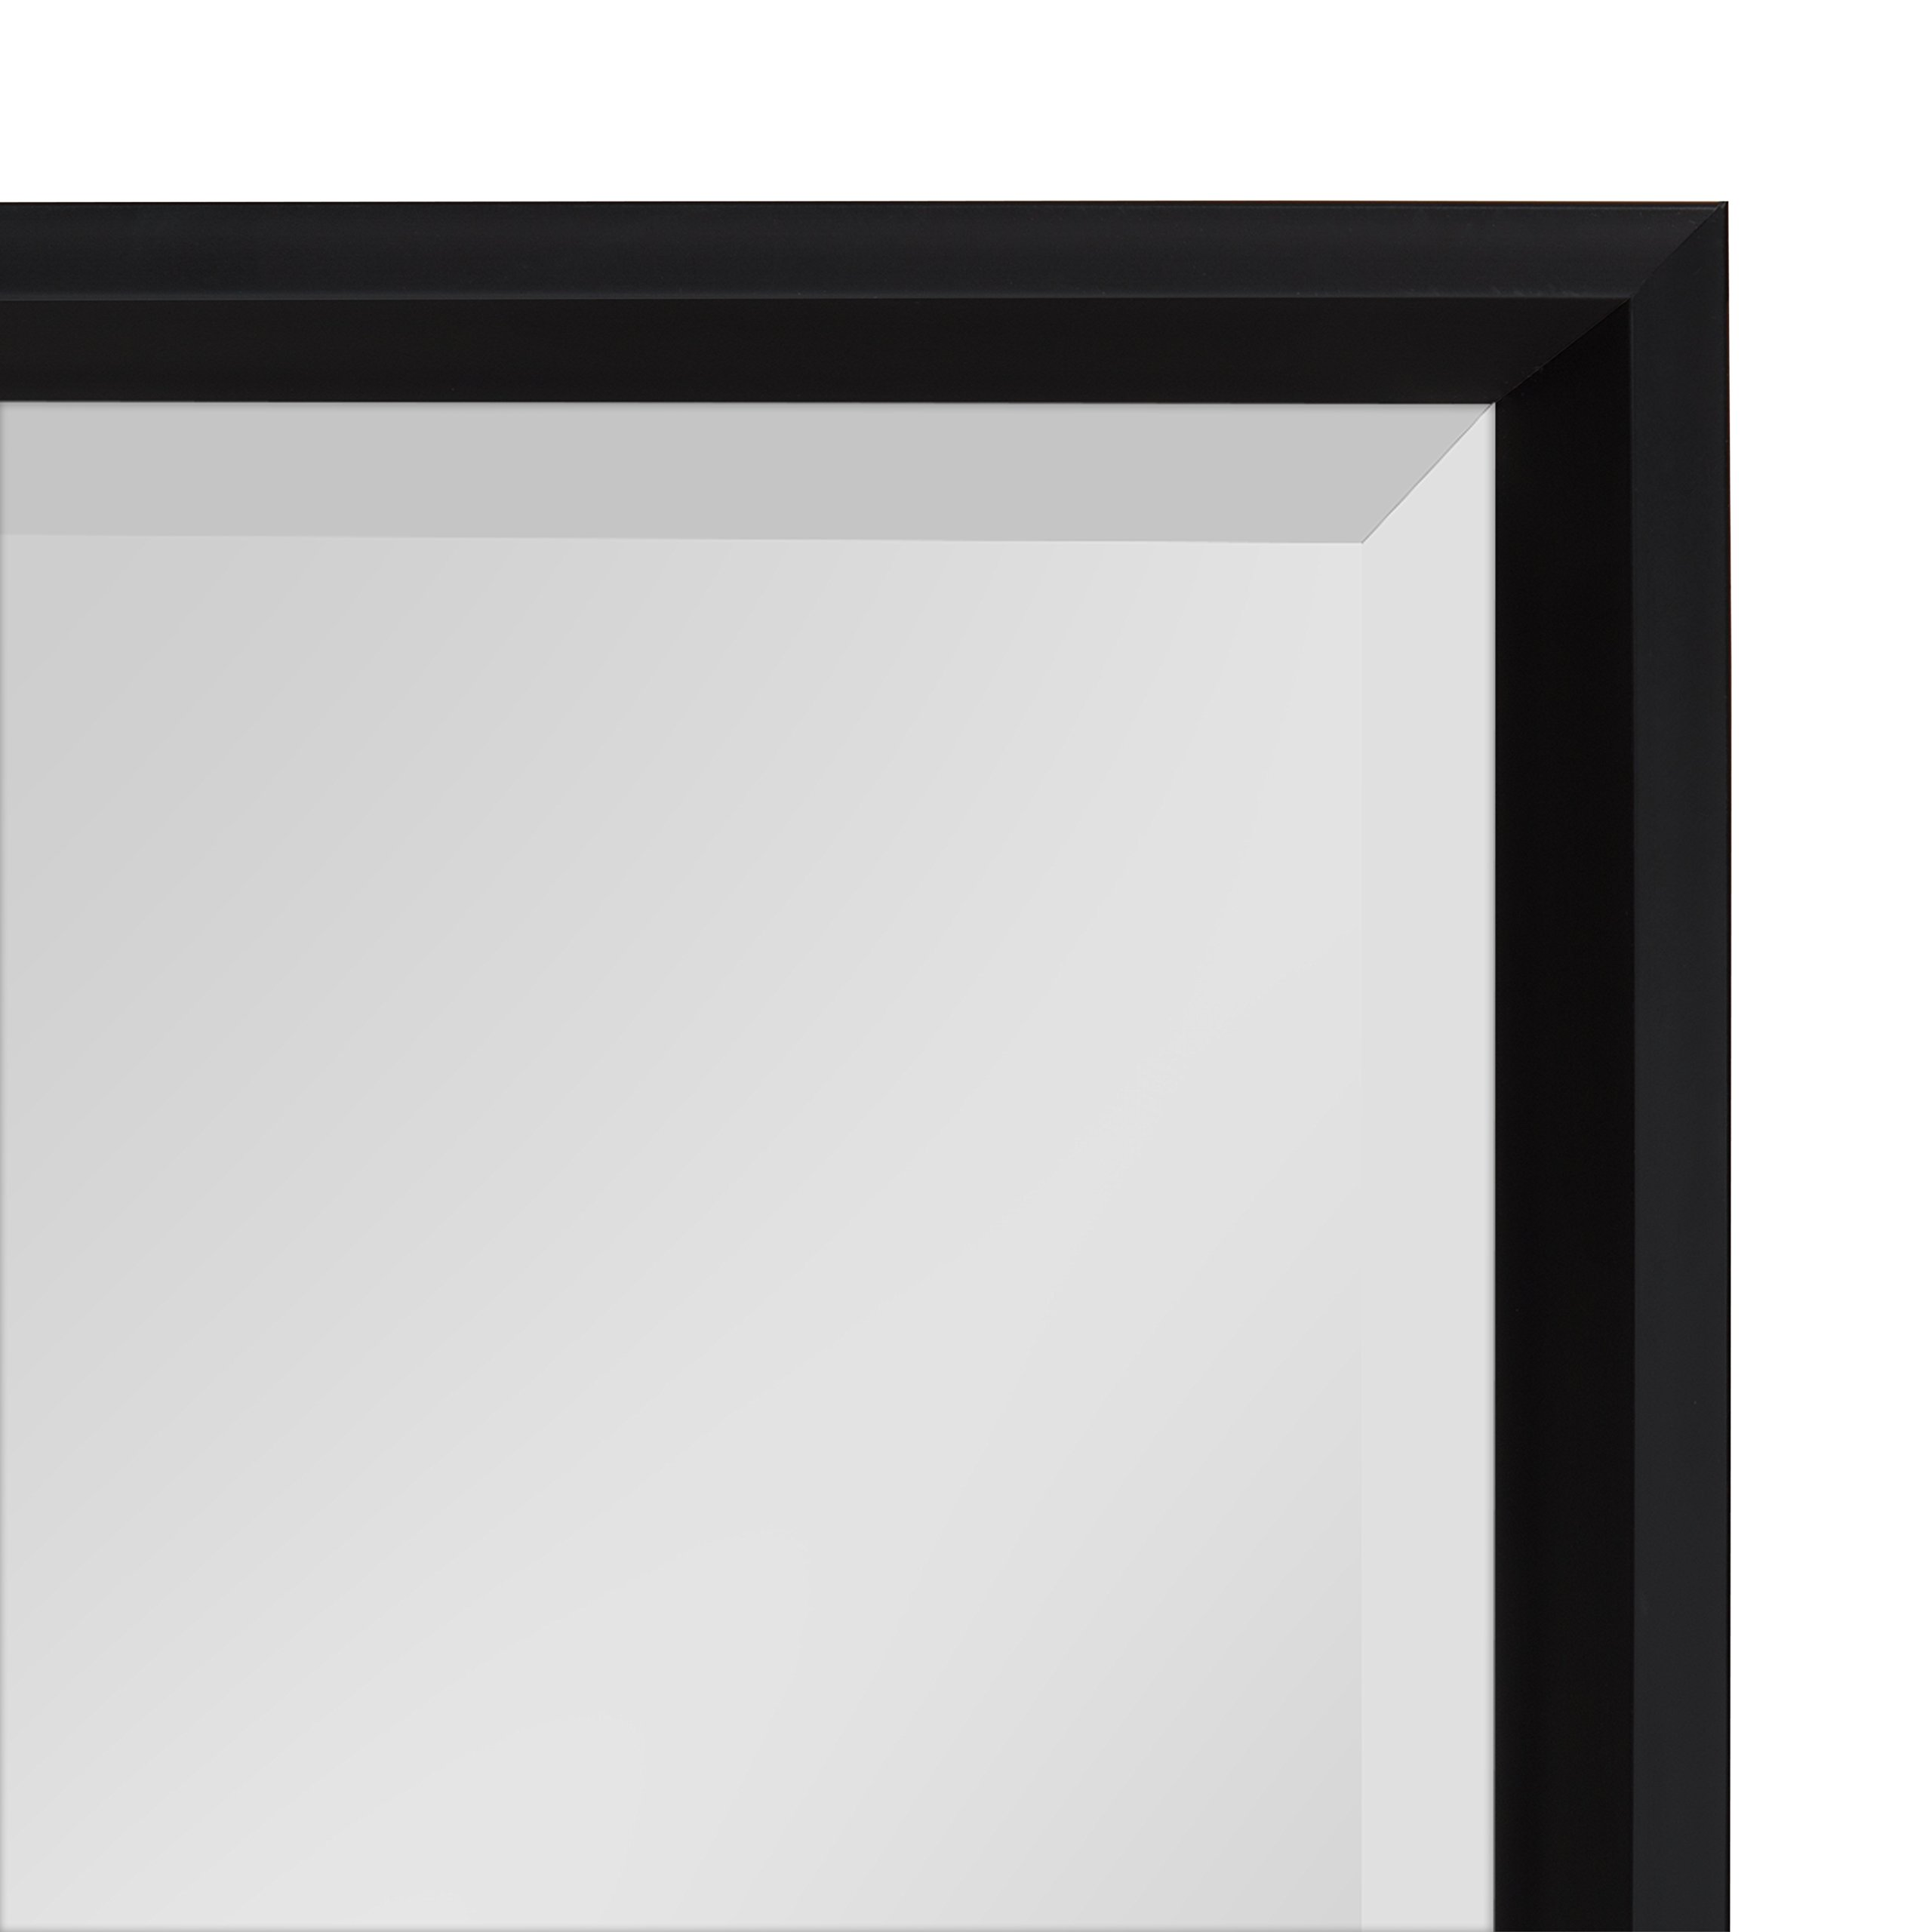 Kate and Laurel Calter Modern Decorative Framed Beveled Wall Mirror, 19.5x25.5 Black by Kate and Laurel (Image #2)